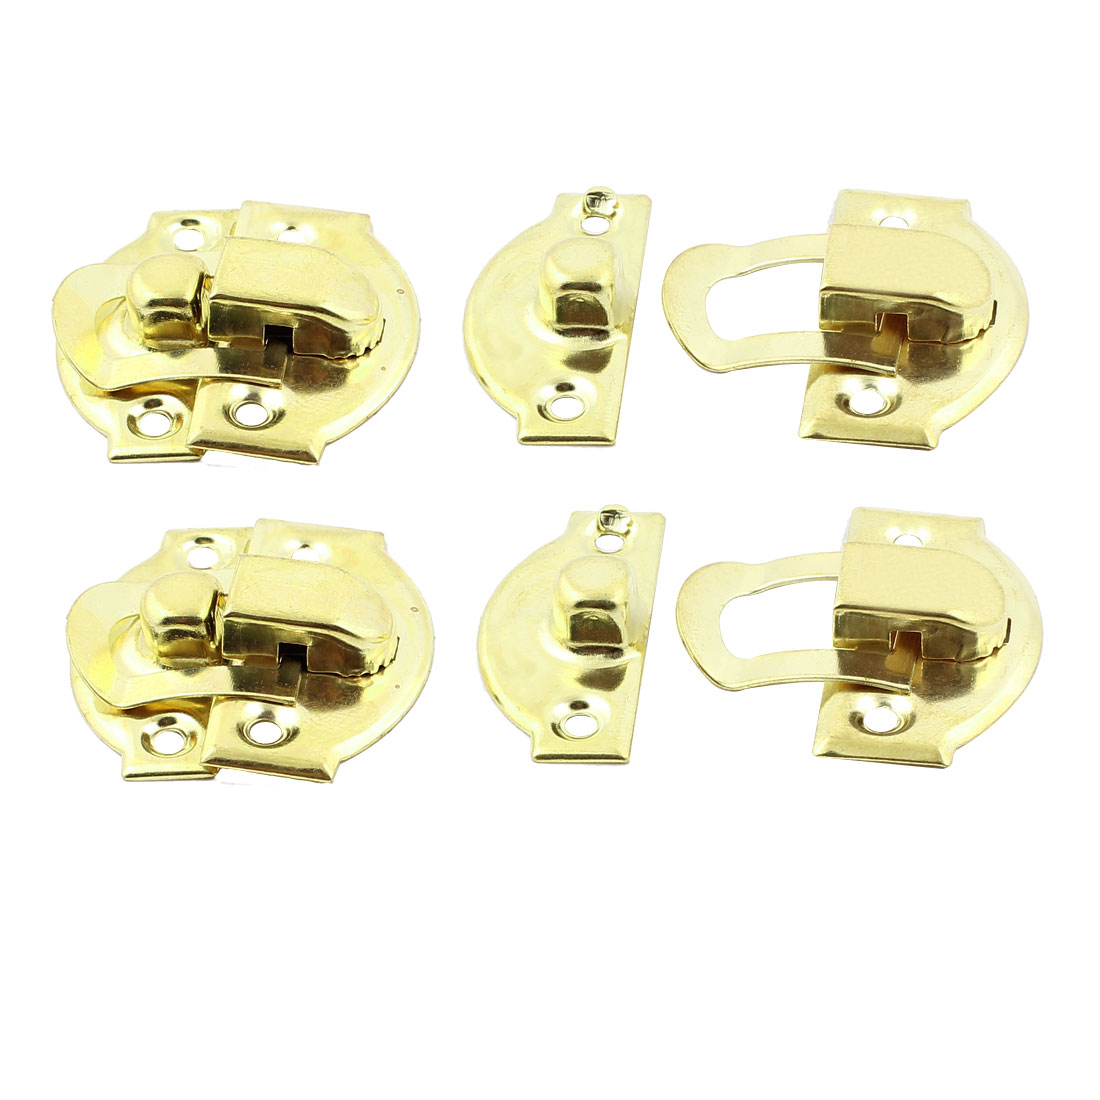 Jewelry Case Box Suitcase Hasp Lock Latch Gold Tone 4PCS